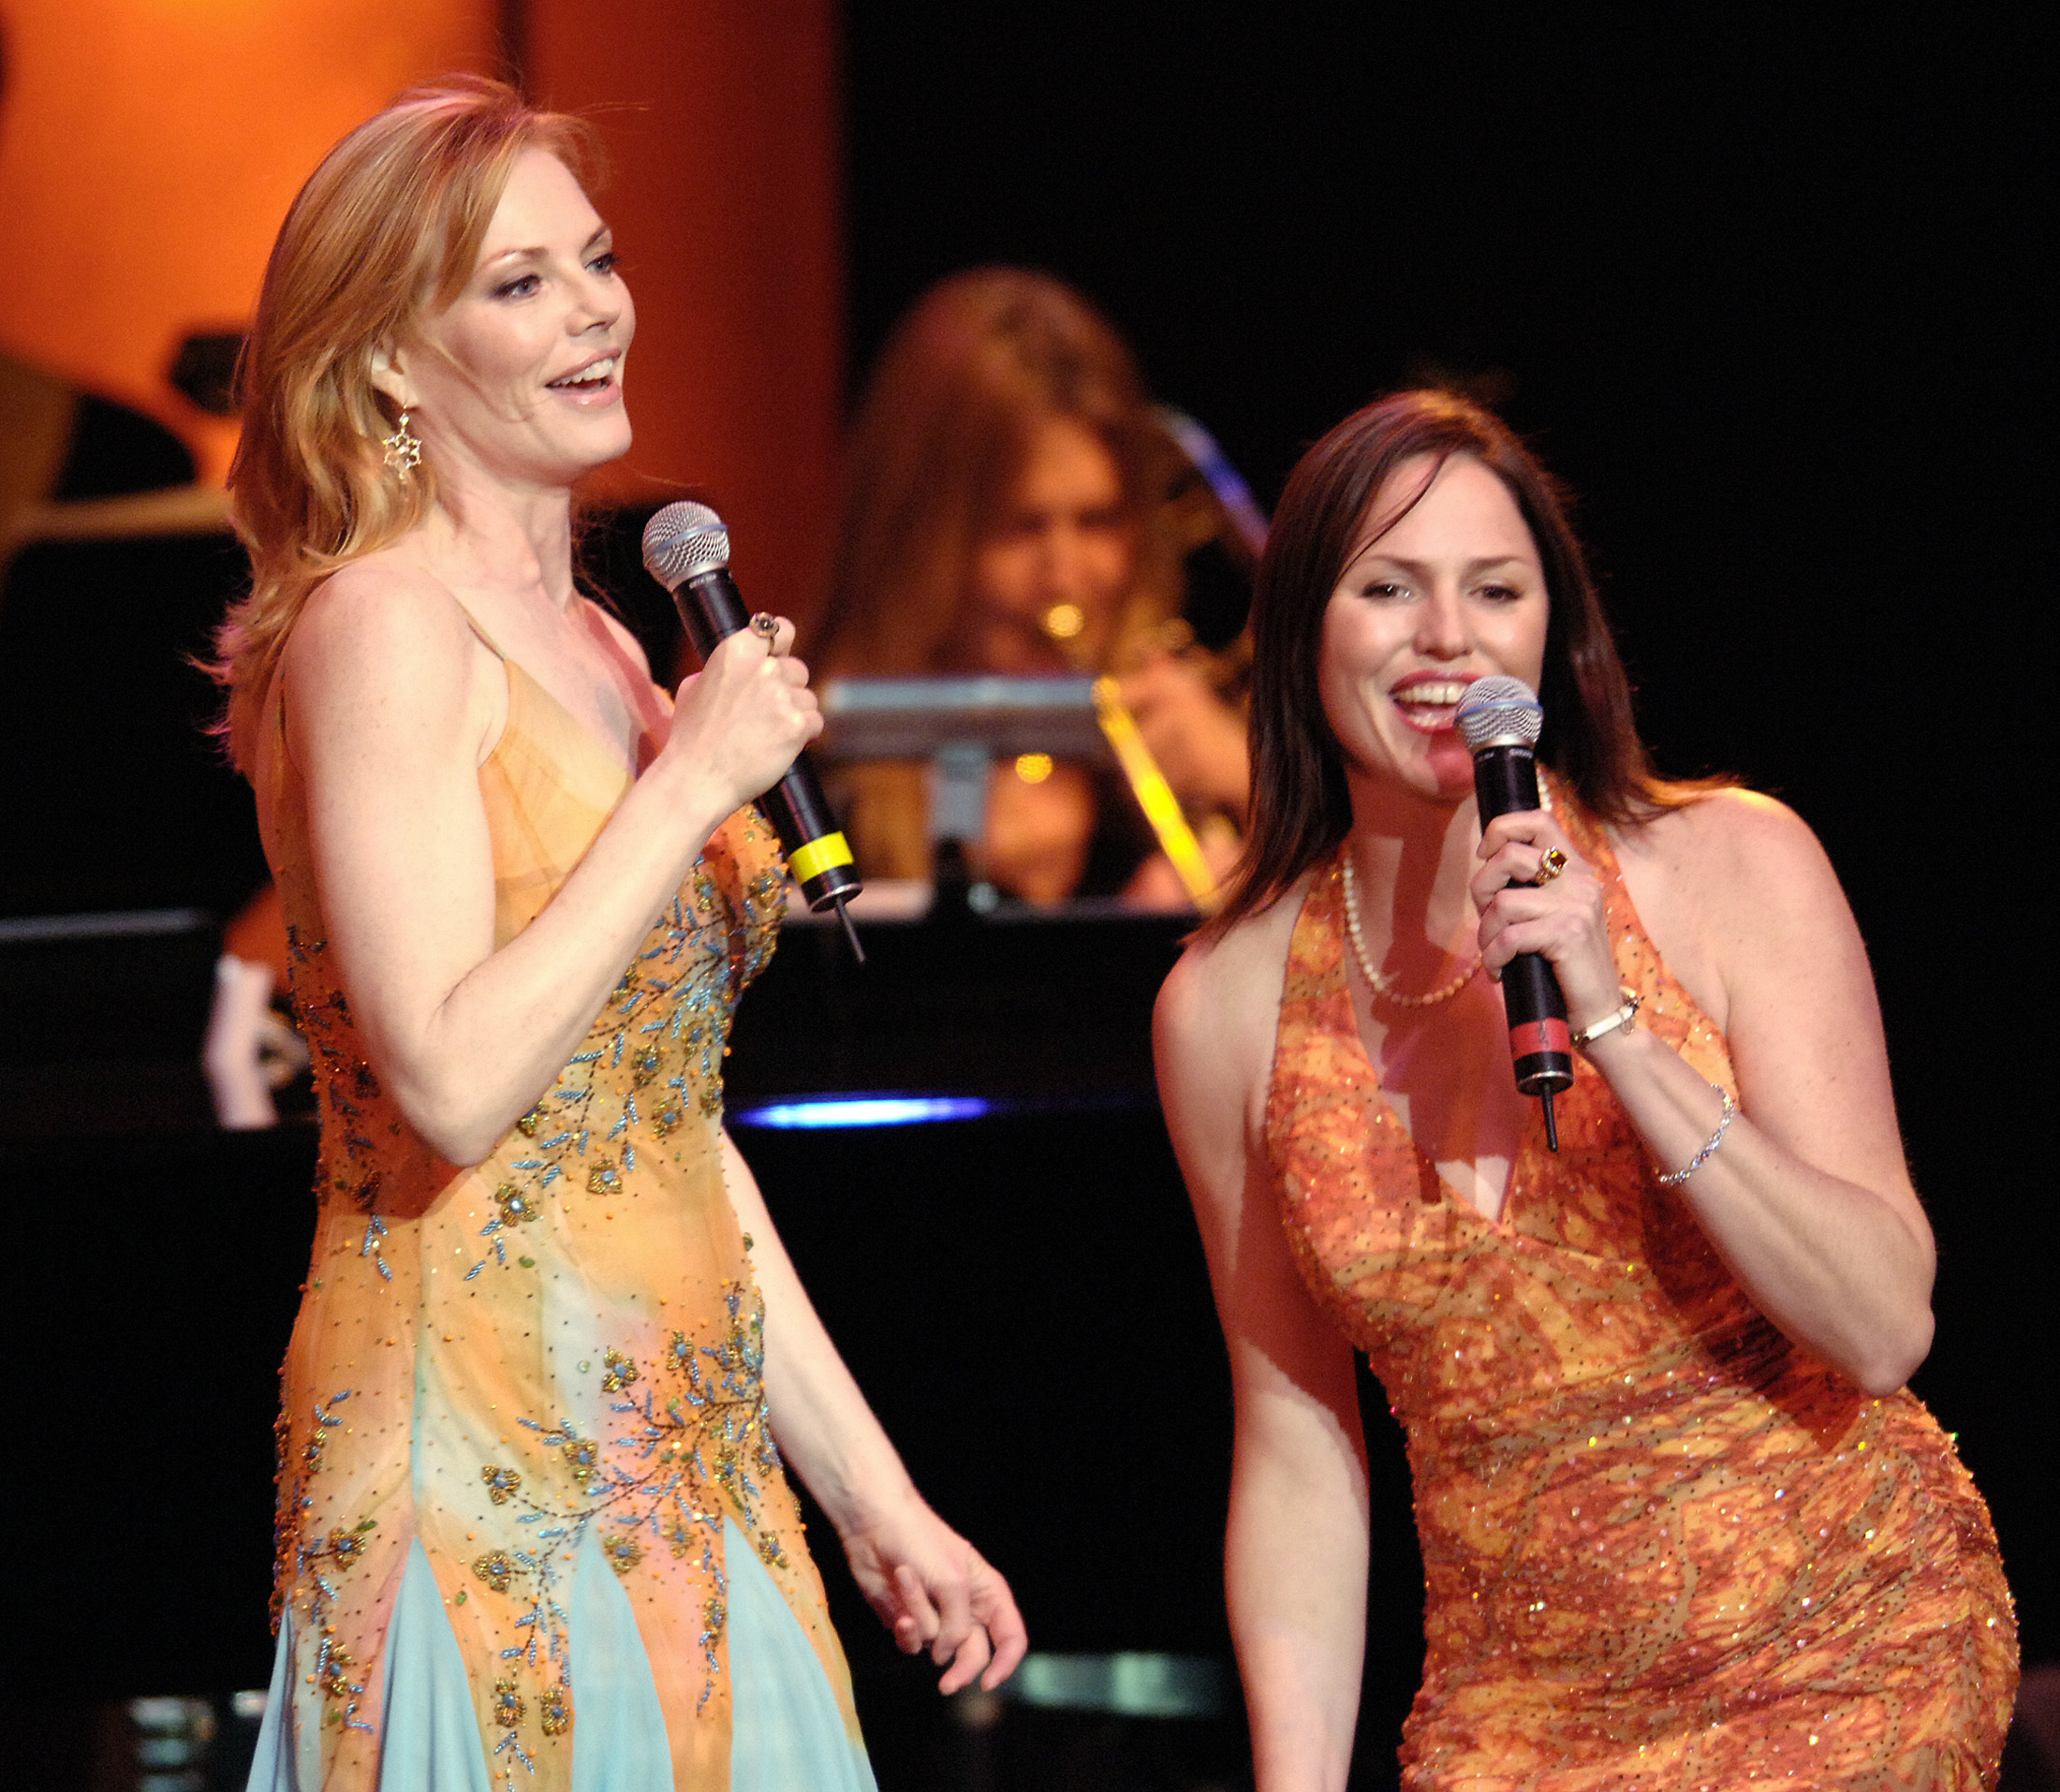 Jorja Fox and marg helgenberger singing